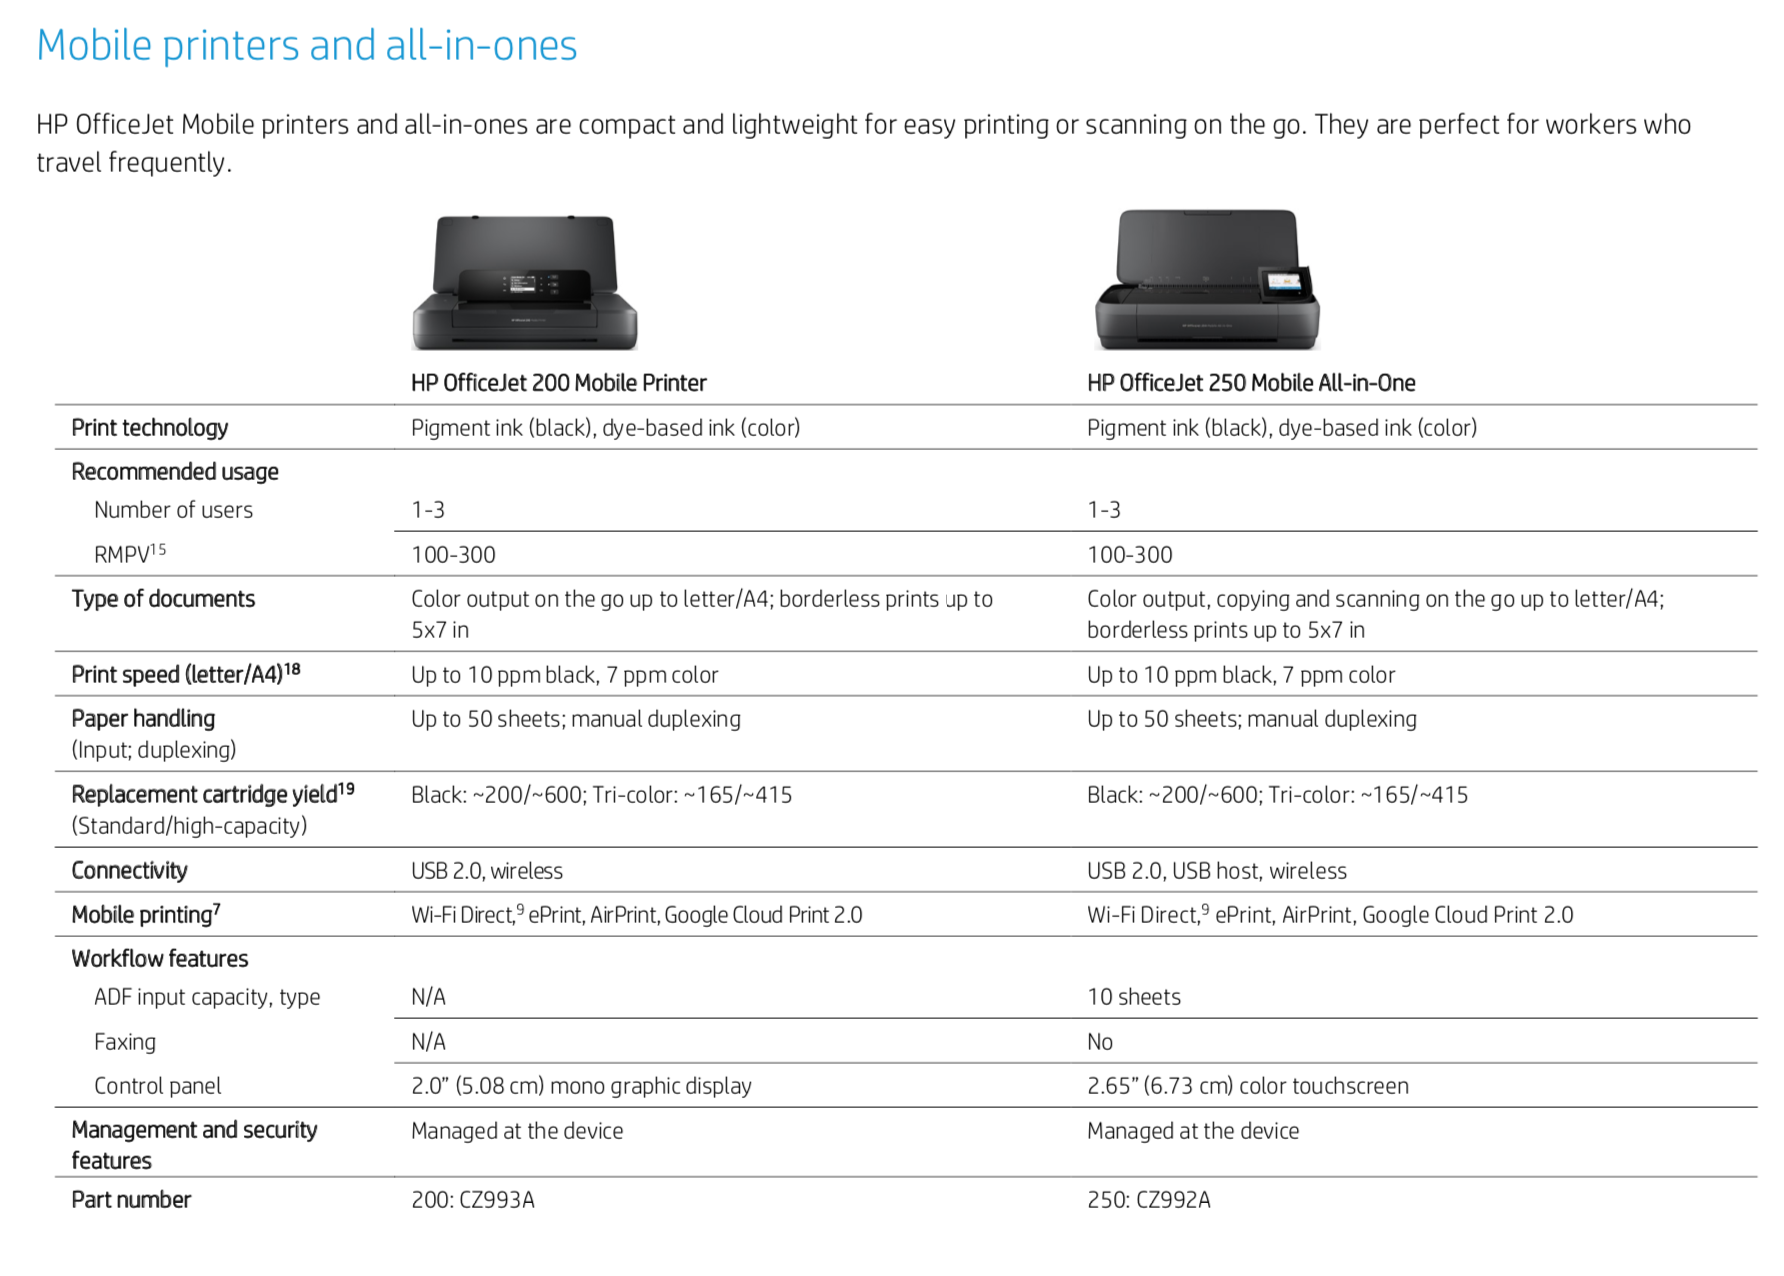 Mobil printers and all-in-ones